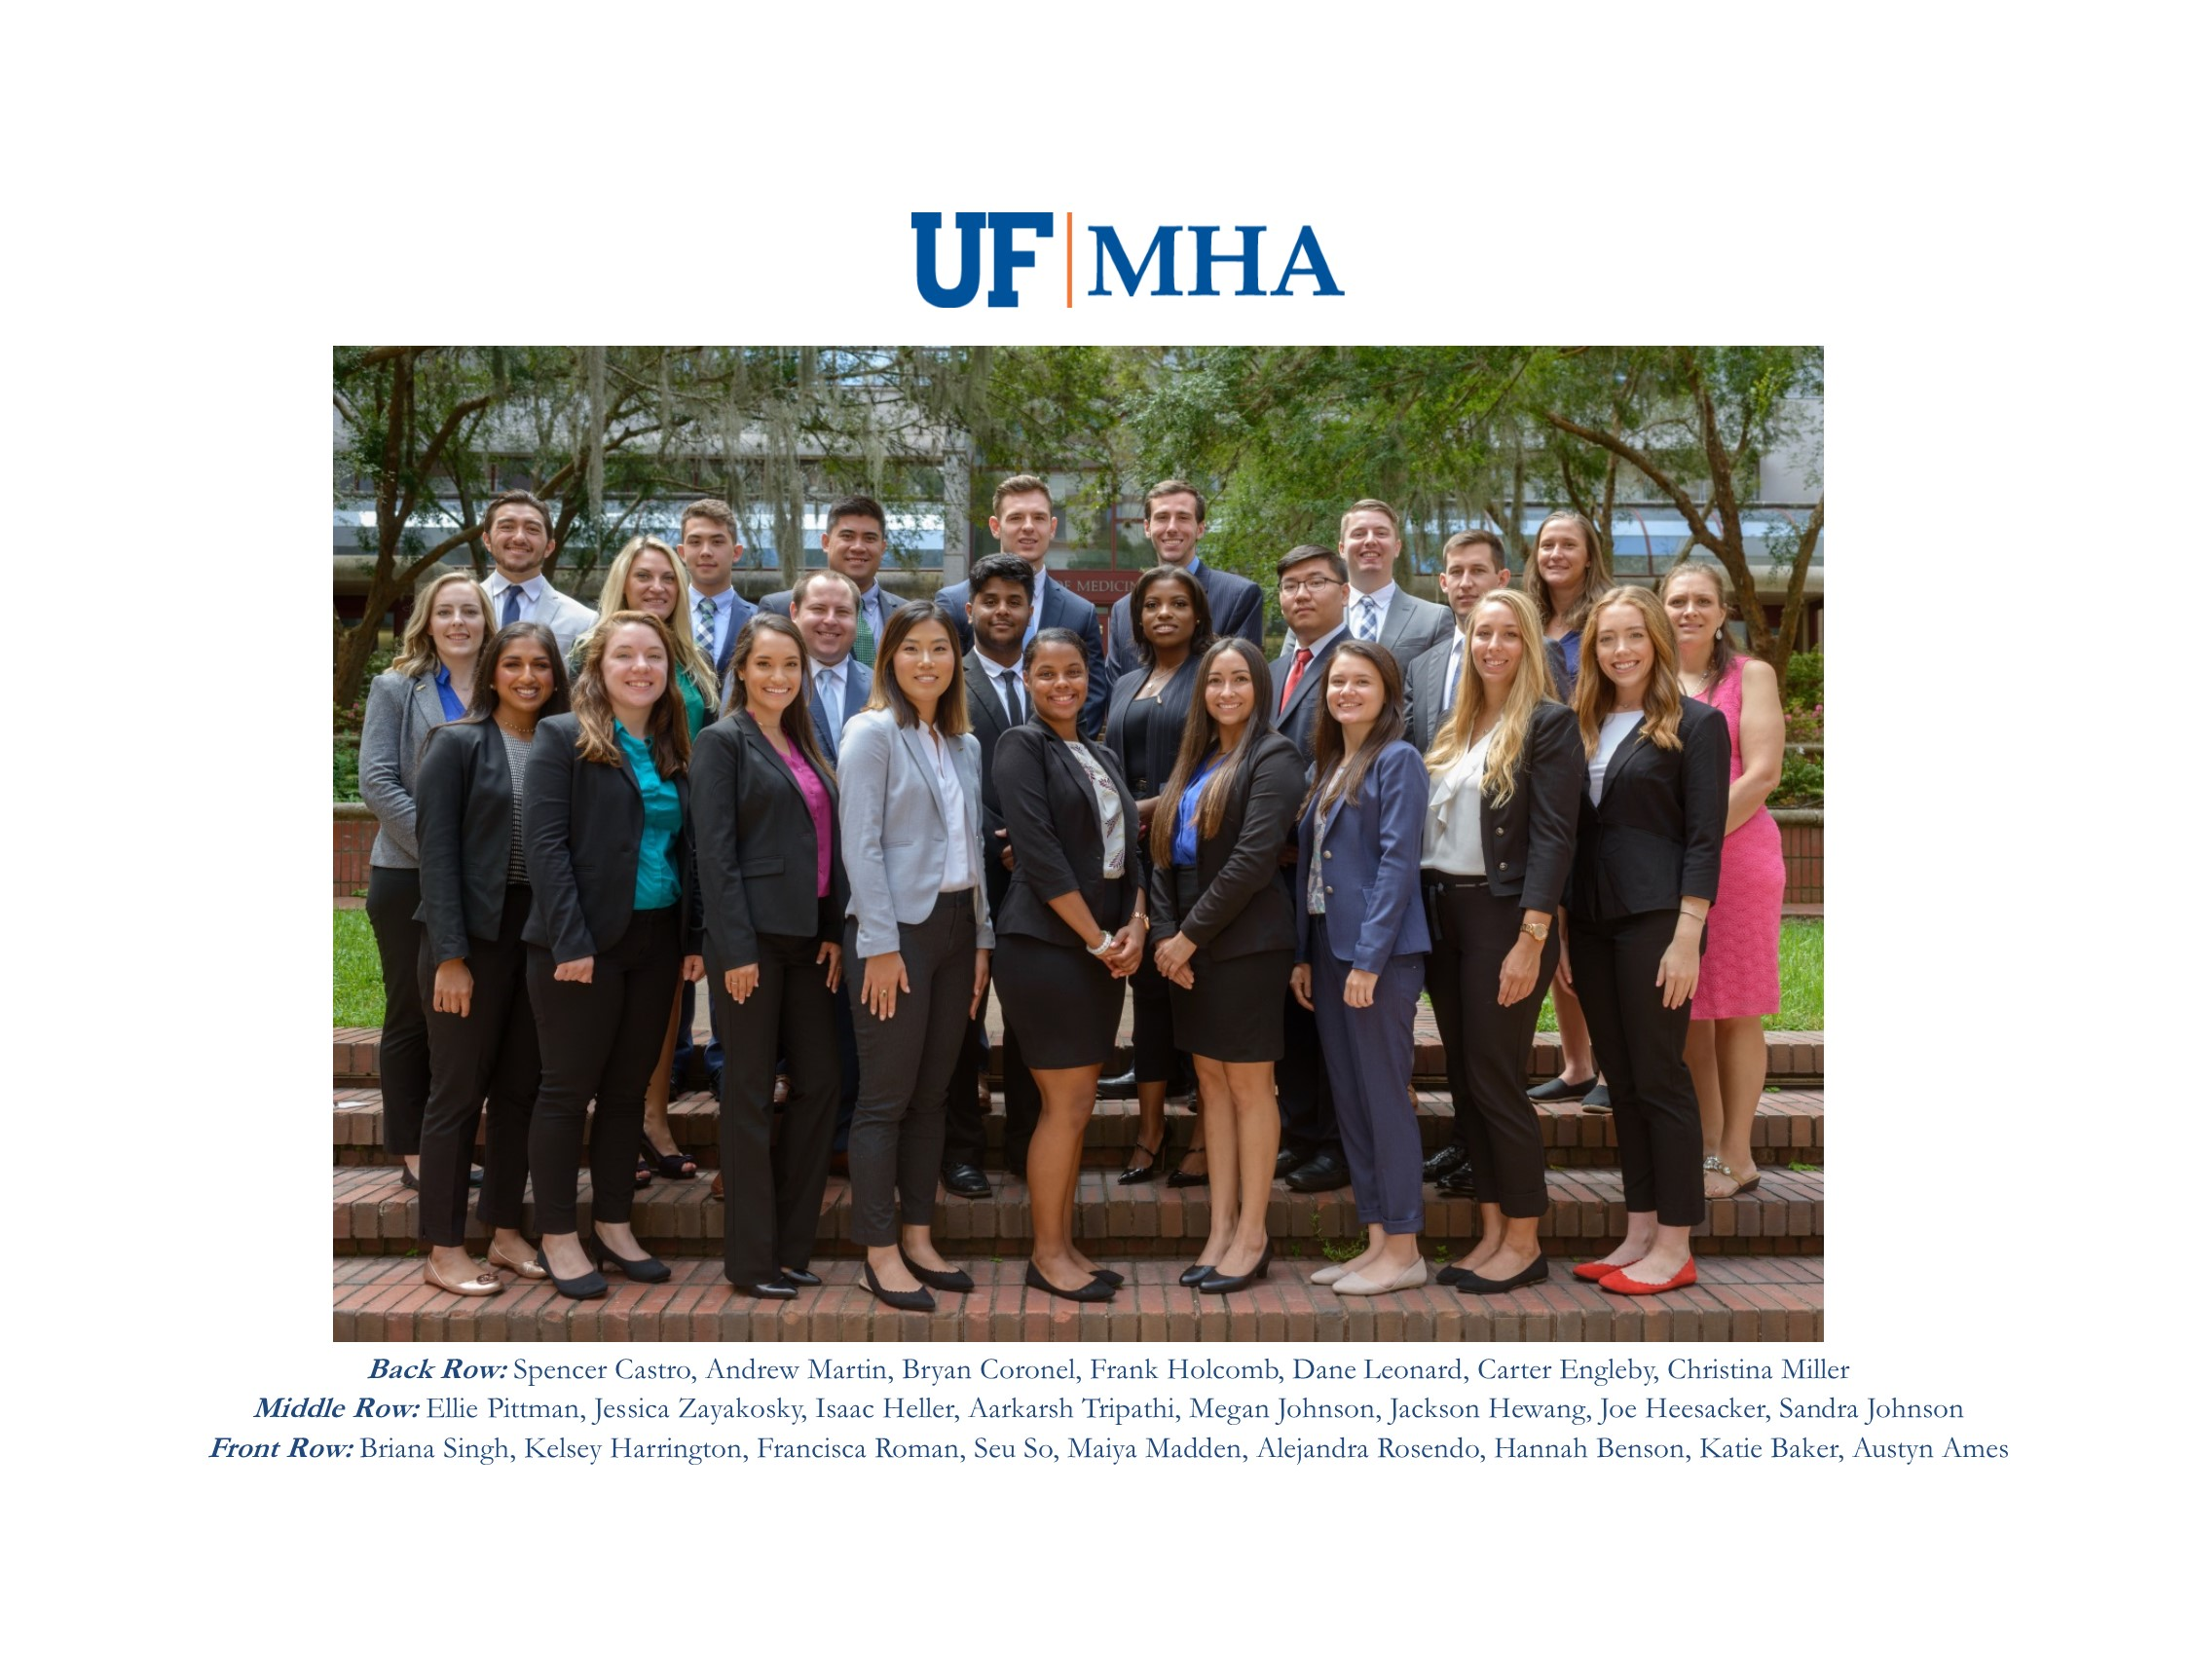 Uf Fall Calendar 2020 Class of 2020 » Health Services Research, Management & Policy